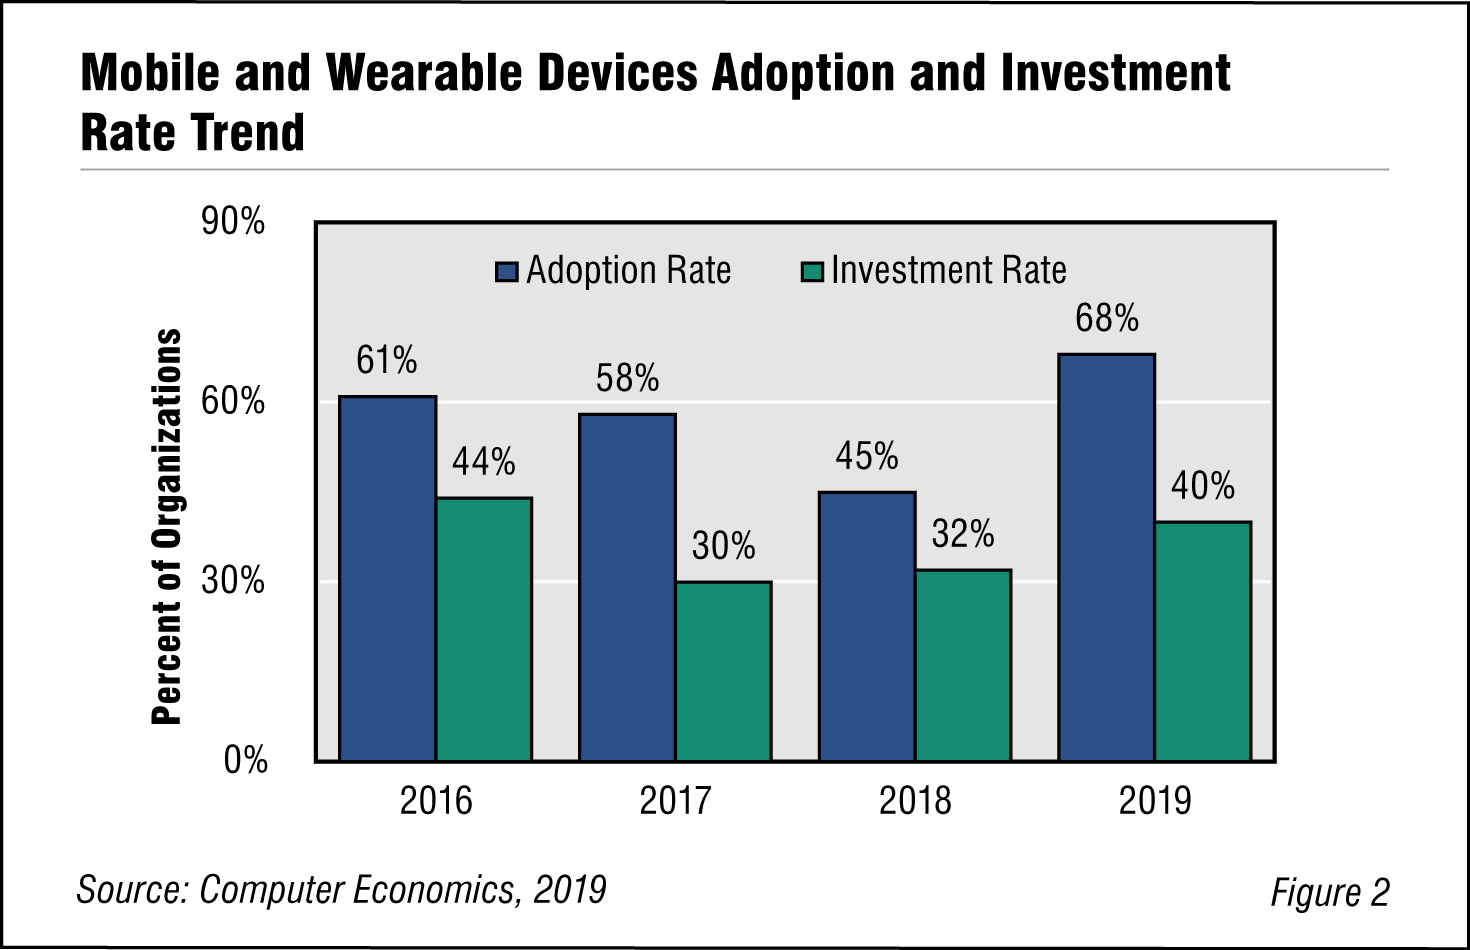 Fig. 2: Mobile and Wearable Device Adoption and Investment Rate Trend